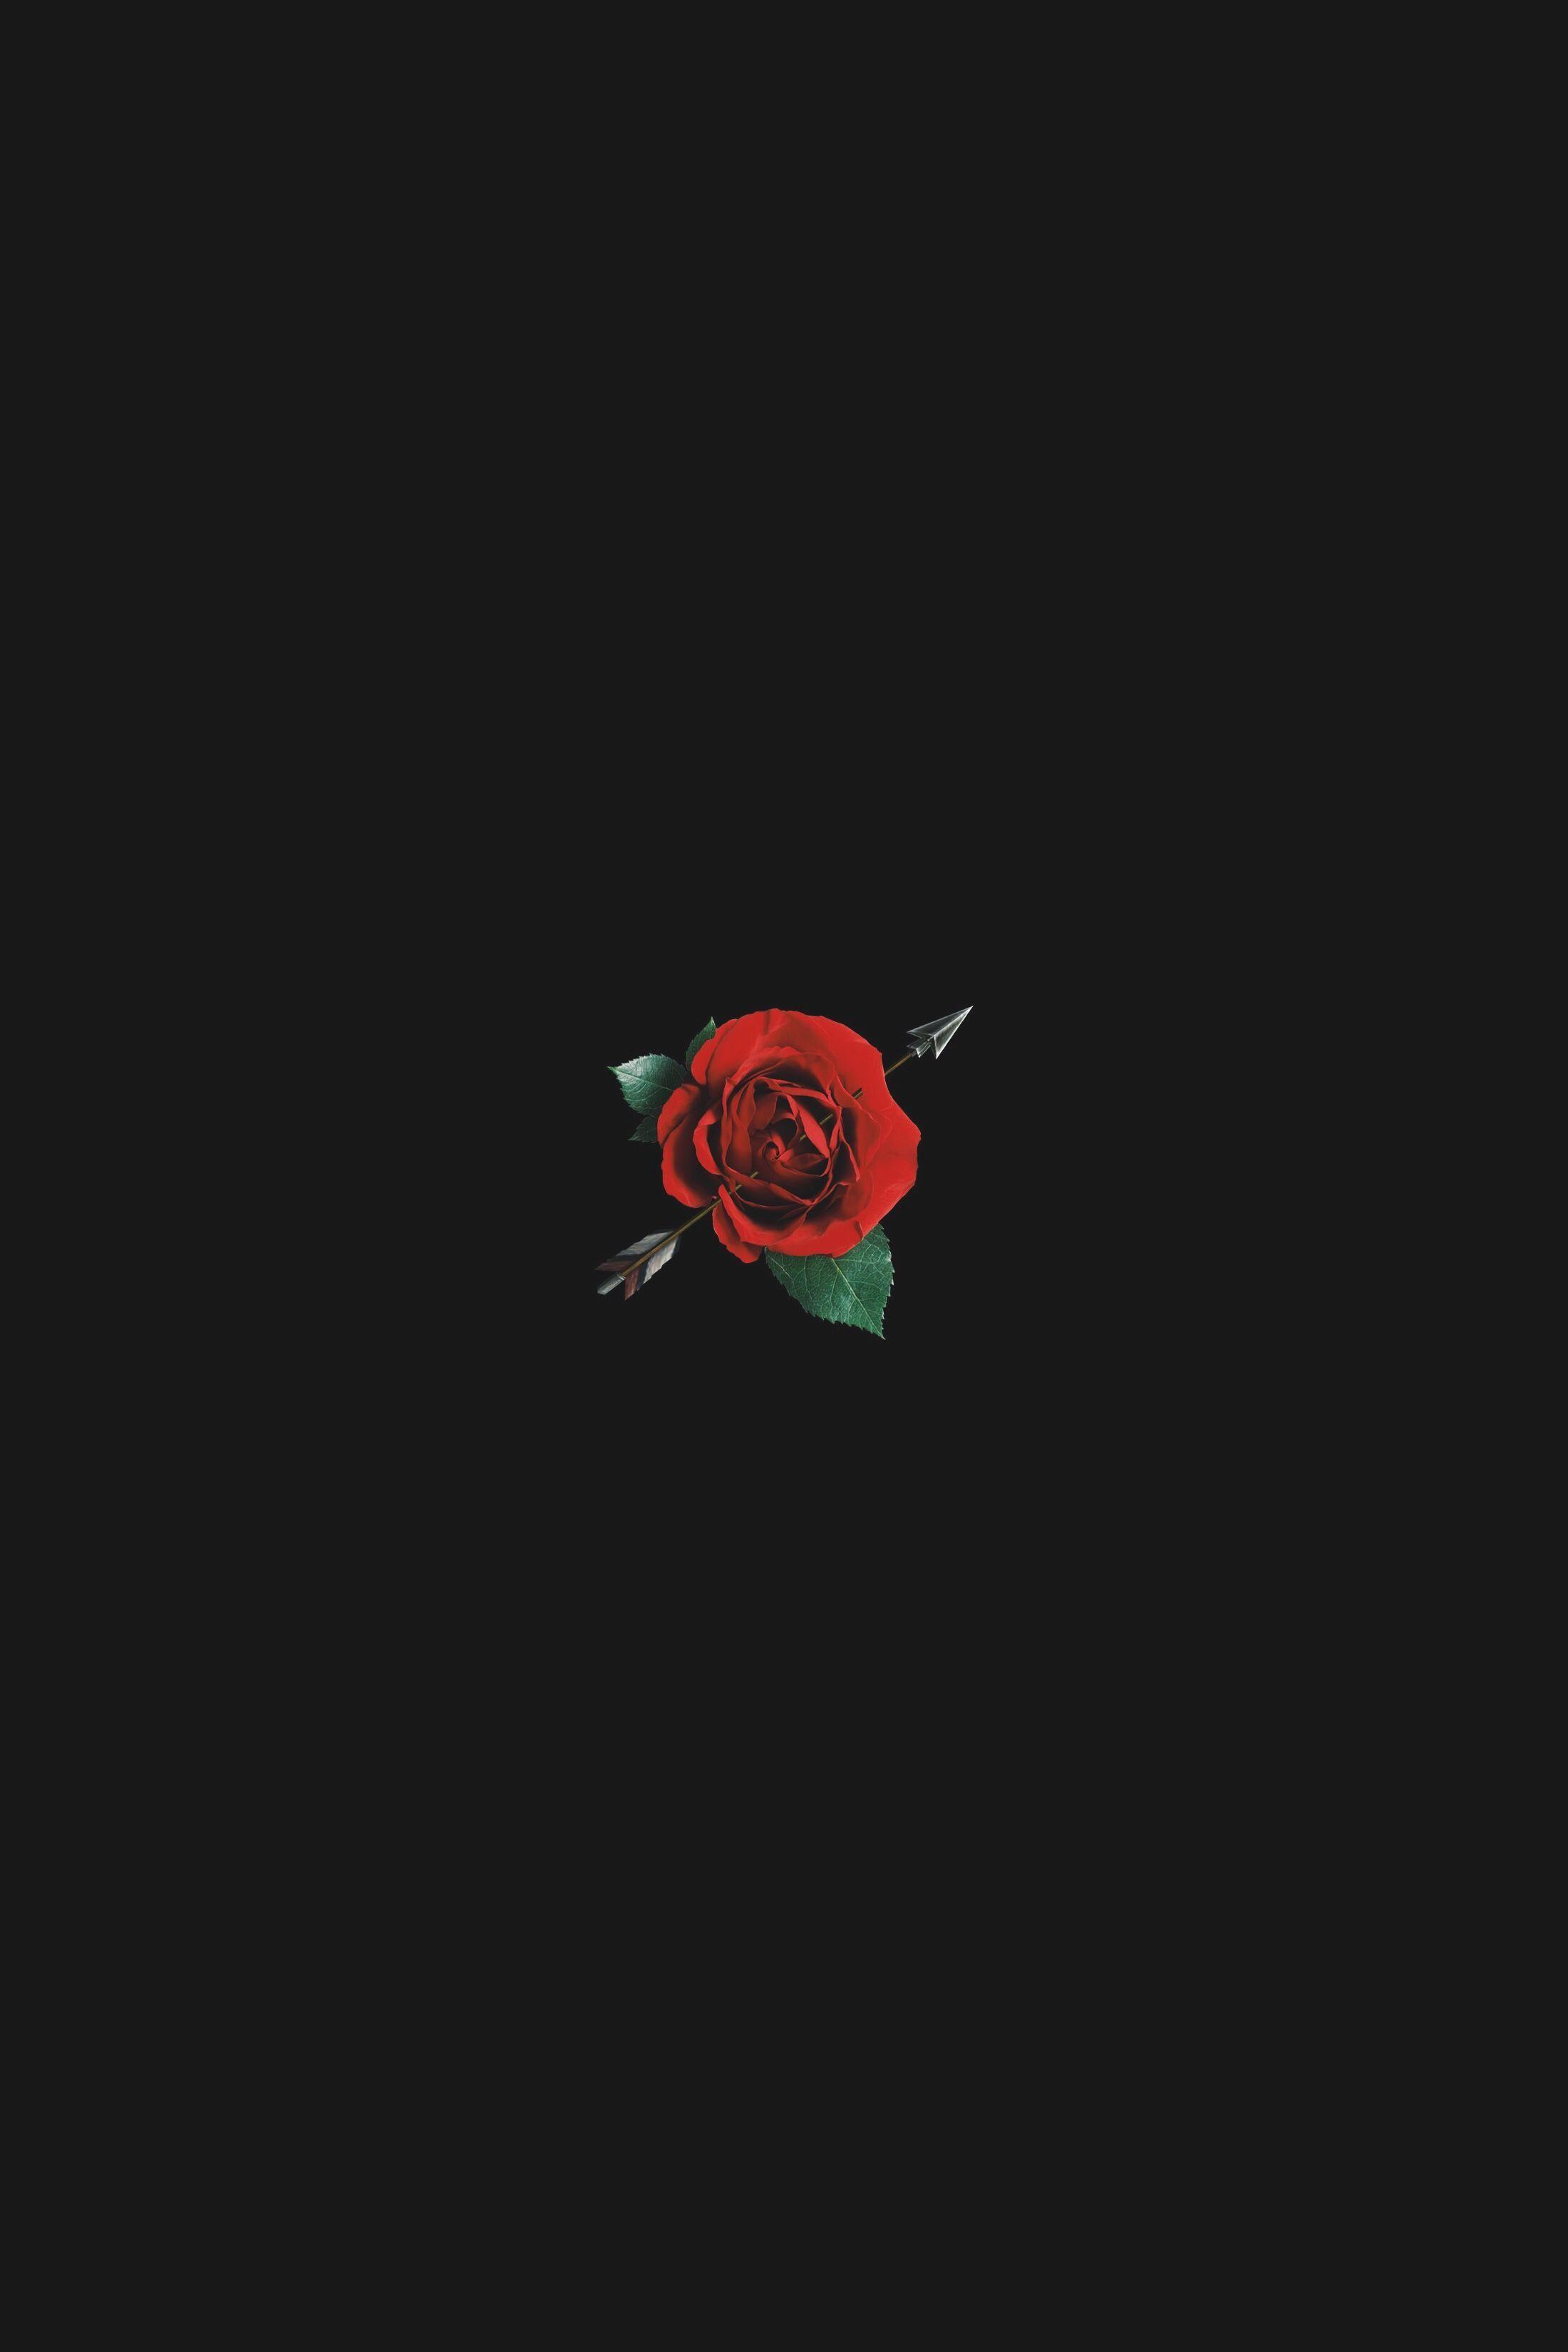 Aesthetic Black Rose Wallpapers Wallpaper Cave